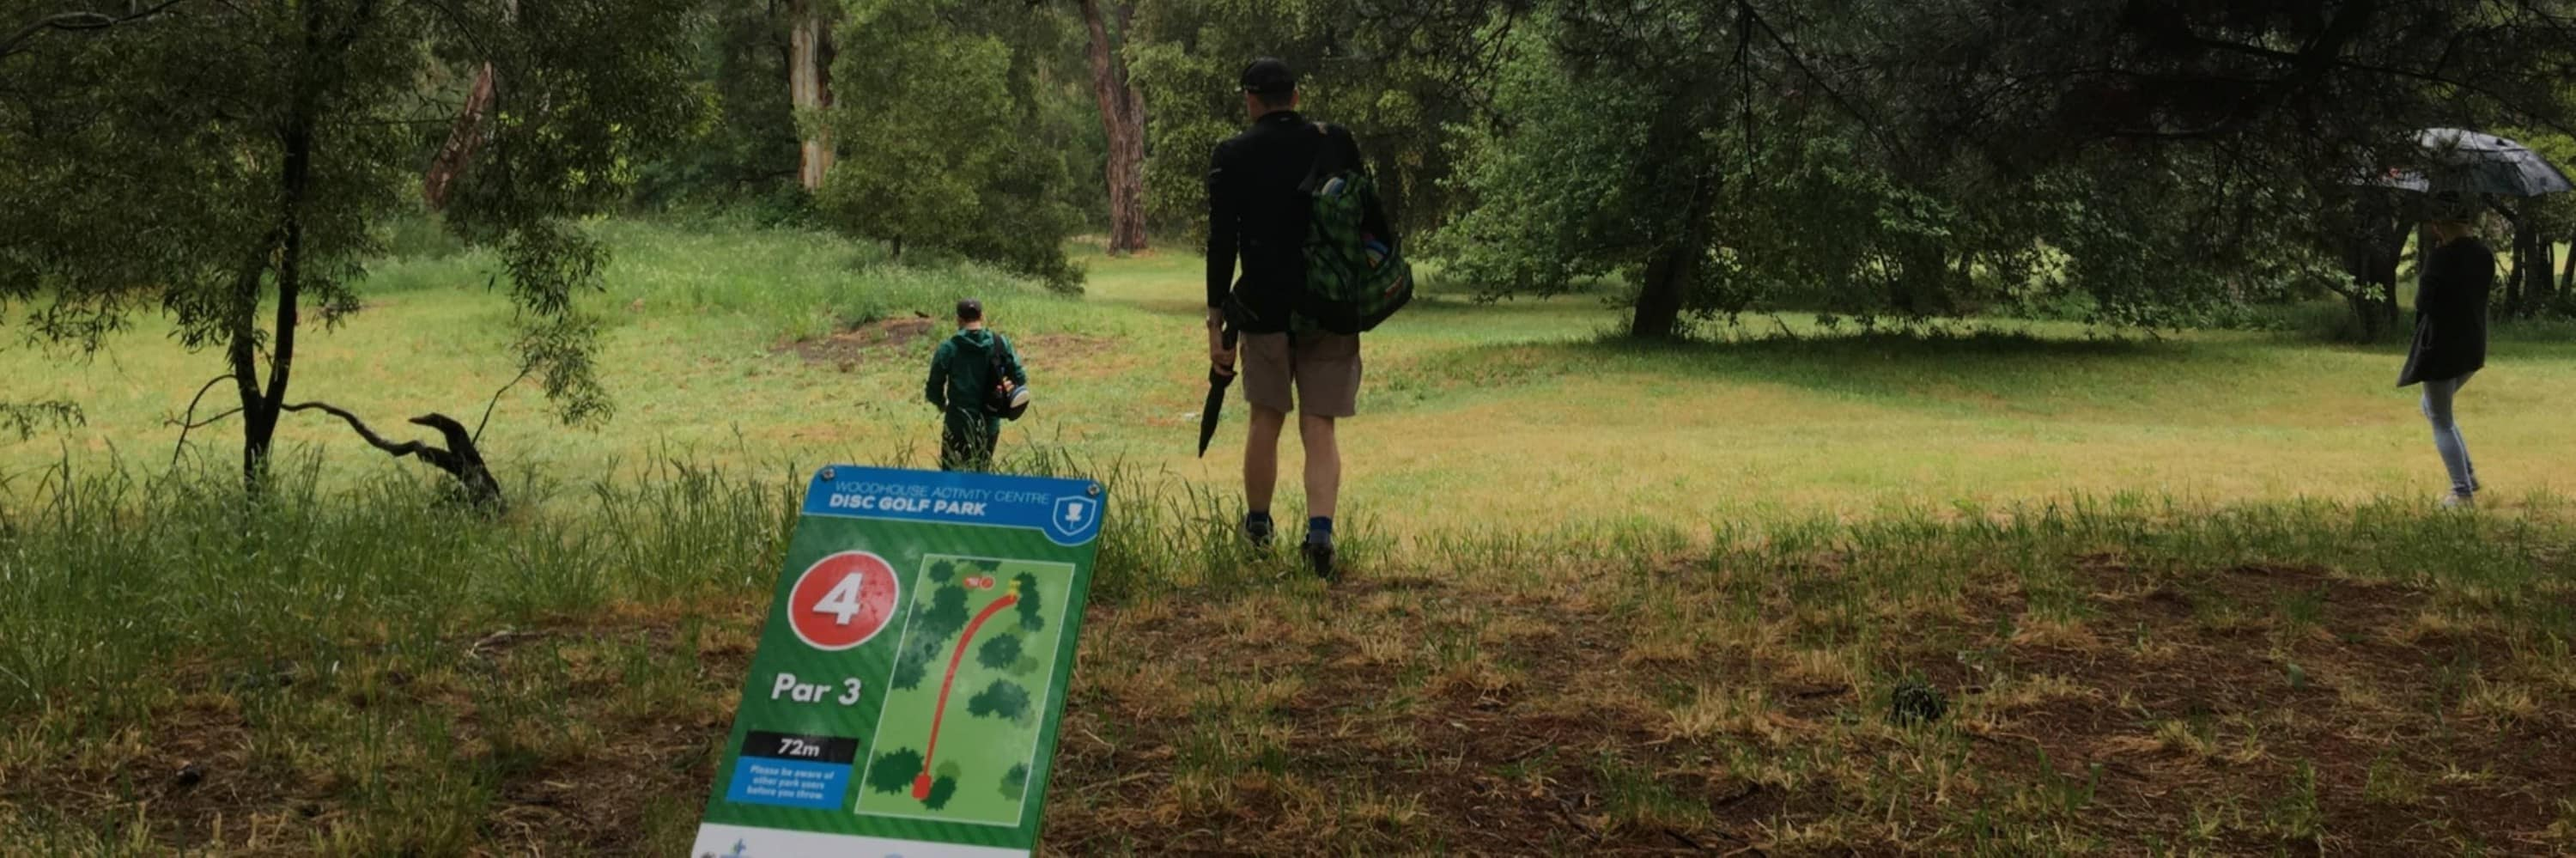 Dude Clothing Benefits of the Game A Green Sport - How Disc Golf Can Help The Environment